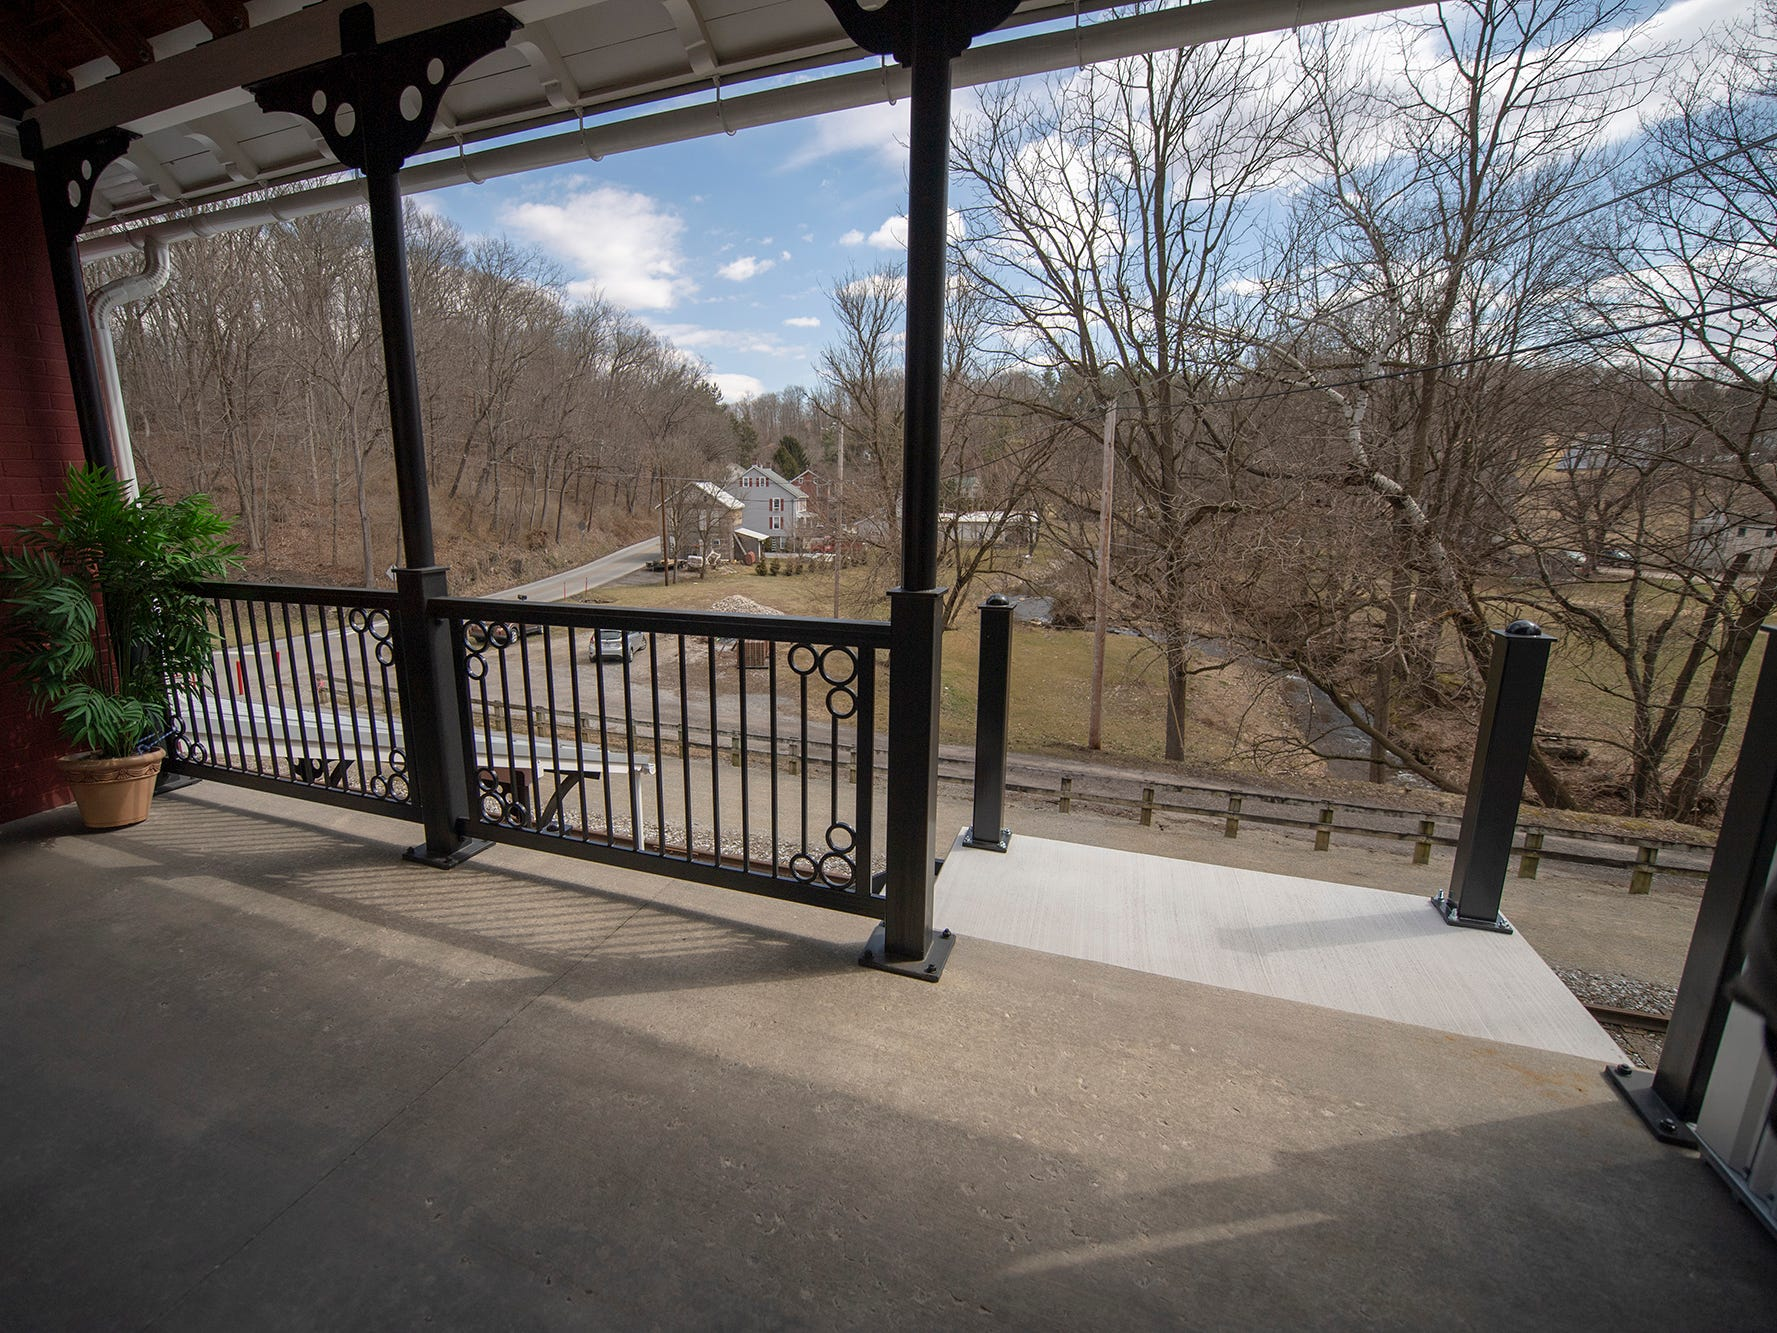 This view is looking across the York County Heritage Rail Trail from the second-floor porch of the Seitzland store.